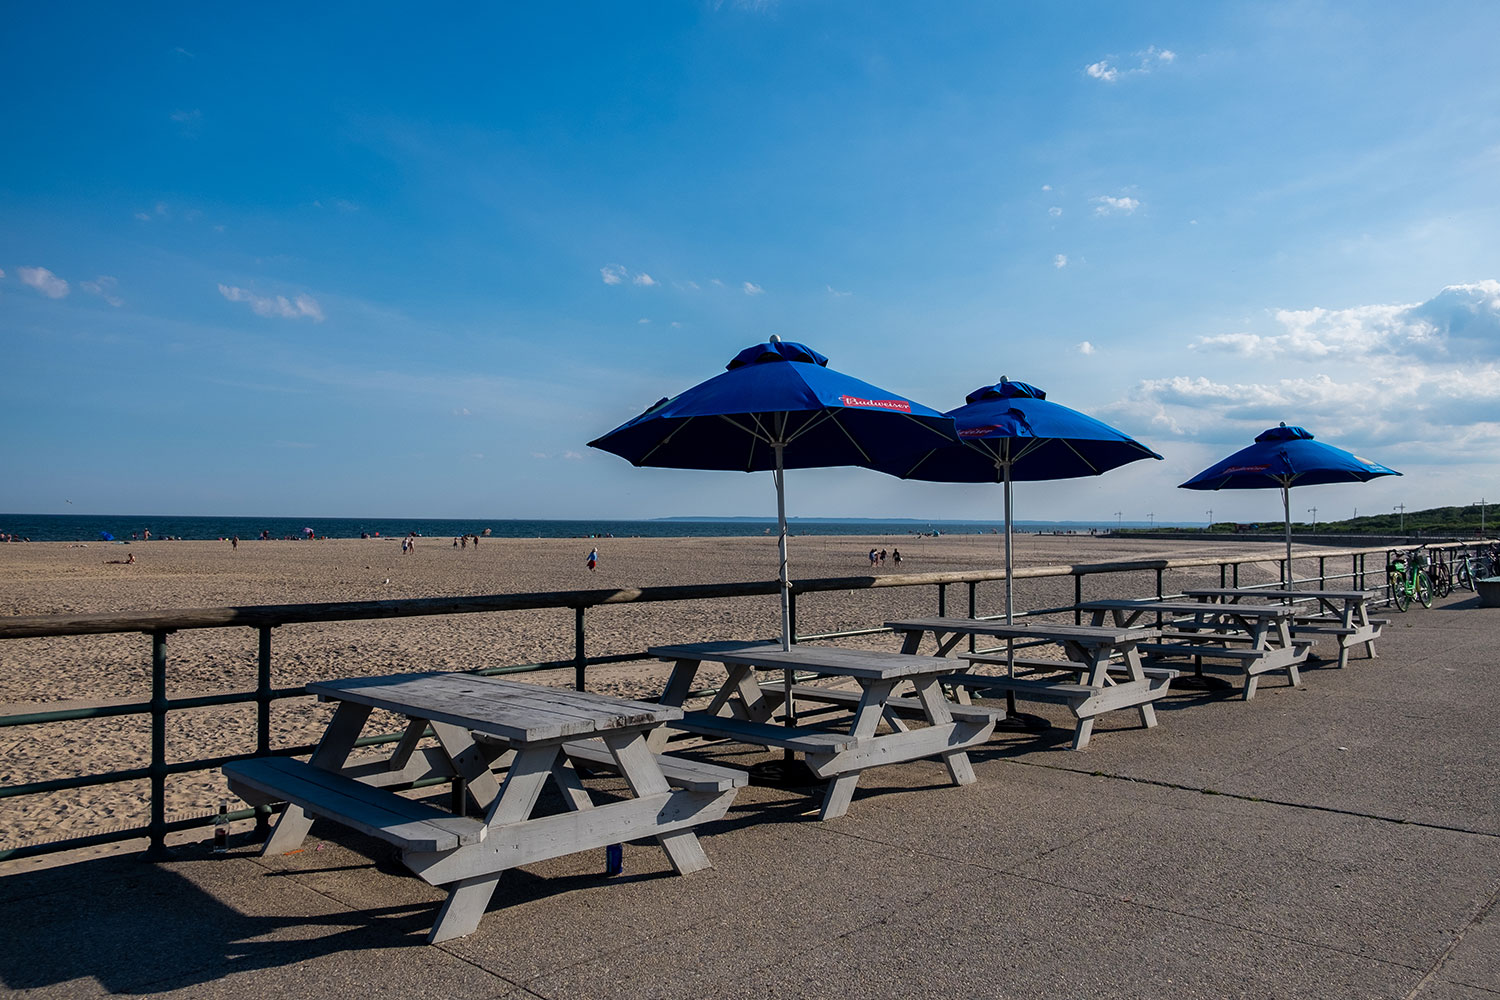 picnic tables lined on the boardwalk at Jacob Riis Beach